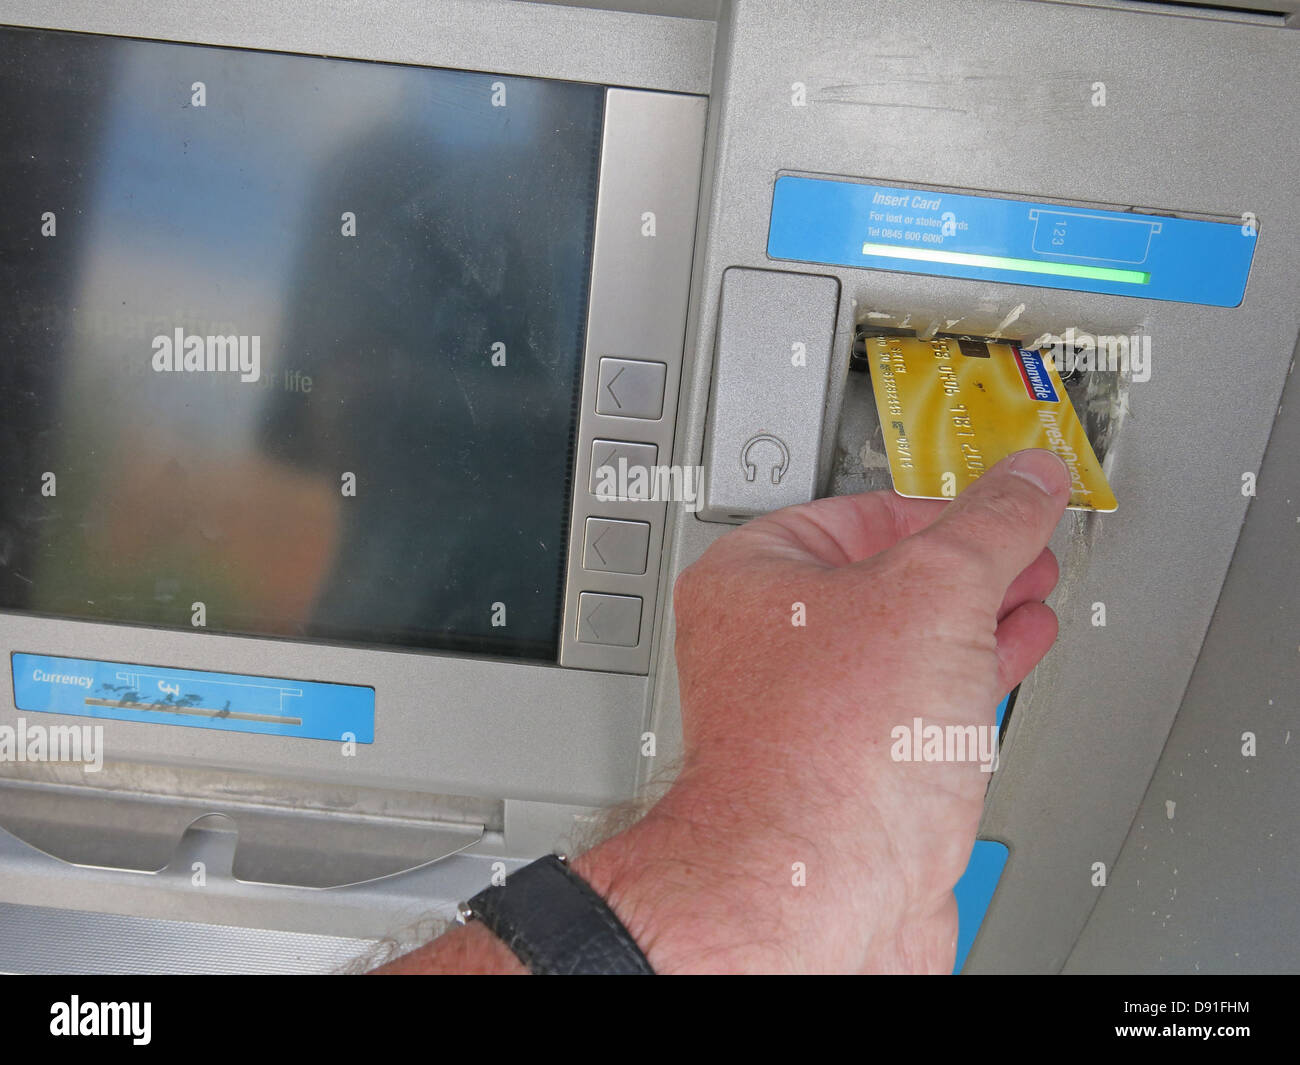 Putting,a,Nationwide,account,card,into,a,co-op,cash,machine,yellow,gotonysmith,England,UK,United,Kingdom,push,pushing,chip,and,pin,hand,finger,ATM,cashmachine,Magnetic,strip,plastic,plasticcard,creditcard,credit,debit,gotonysmith,Buy Pictures of,Buy Images Of